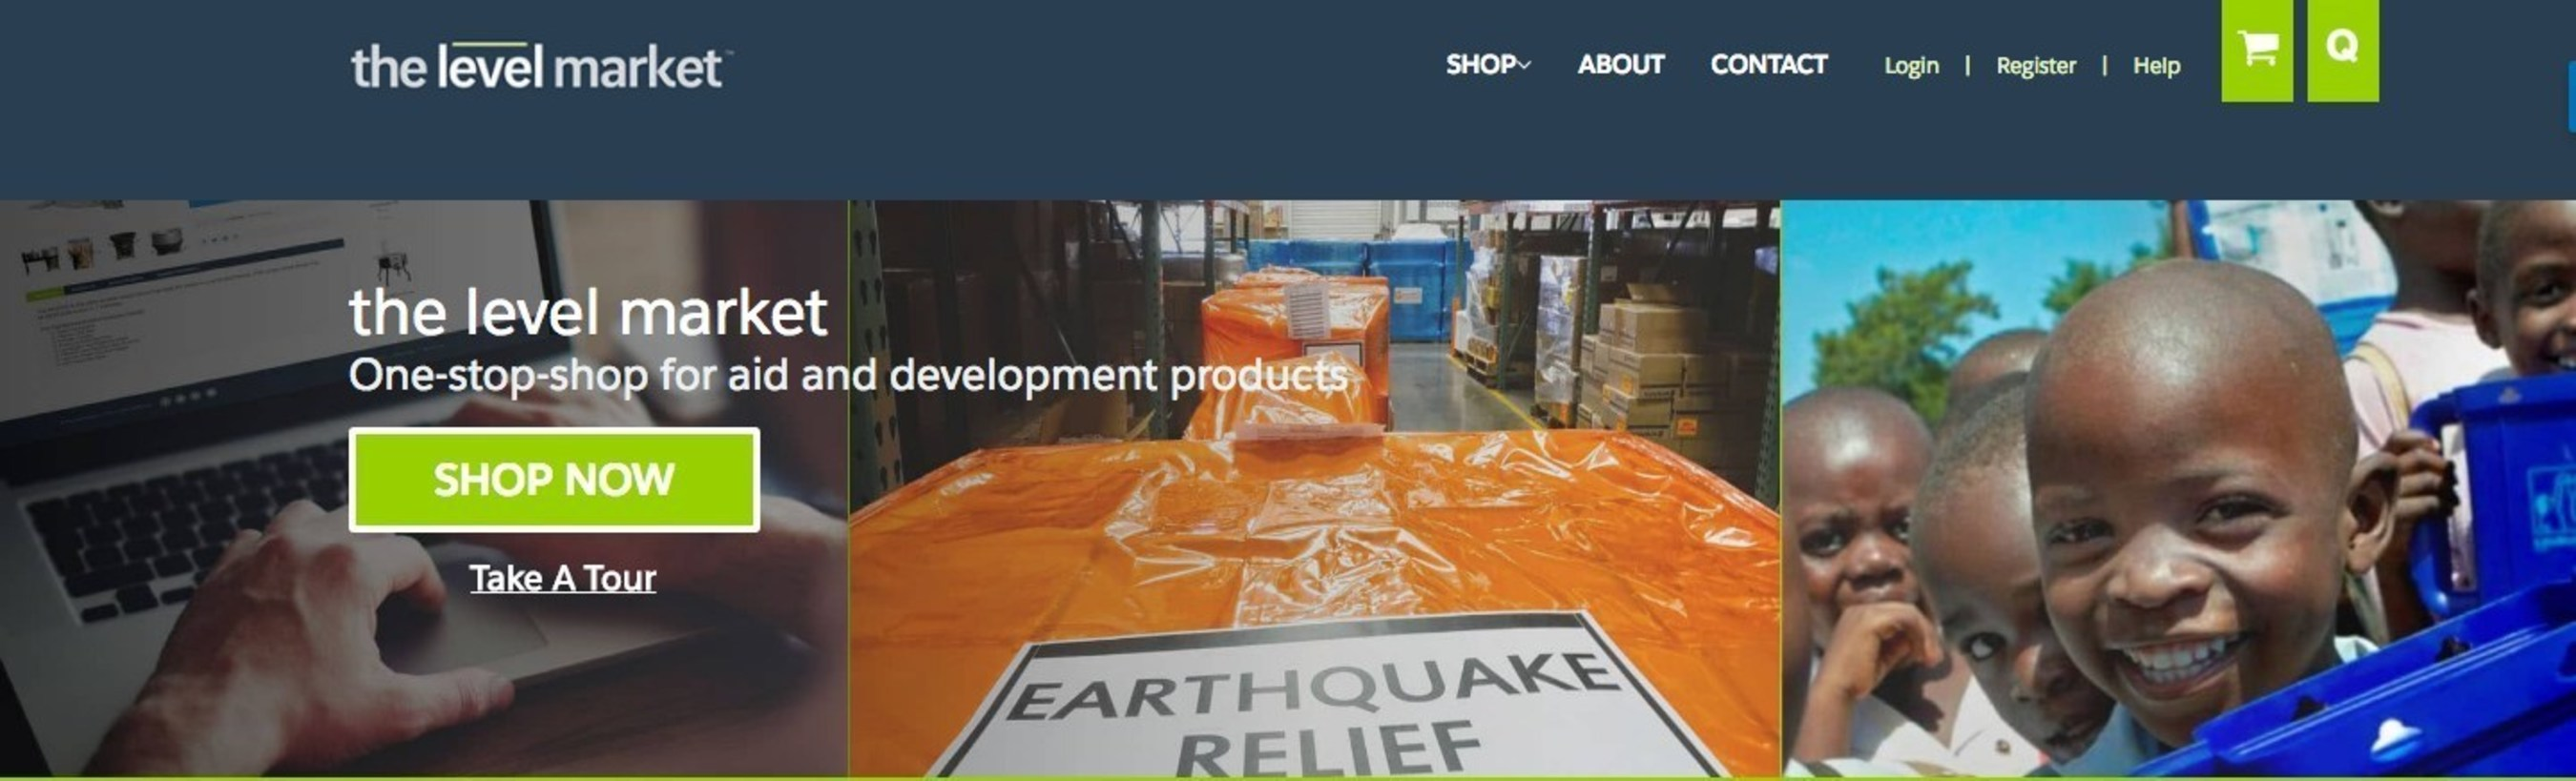 Homepage of The Level Market, where aid buyers can shop, compare, quote and purchase life-saving products.